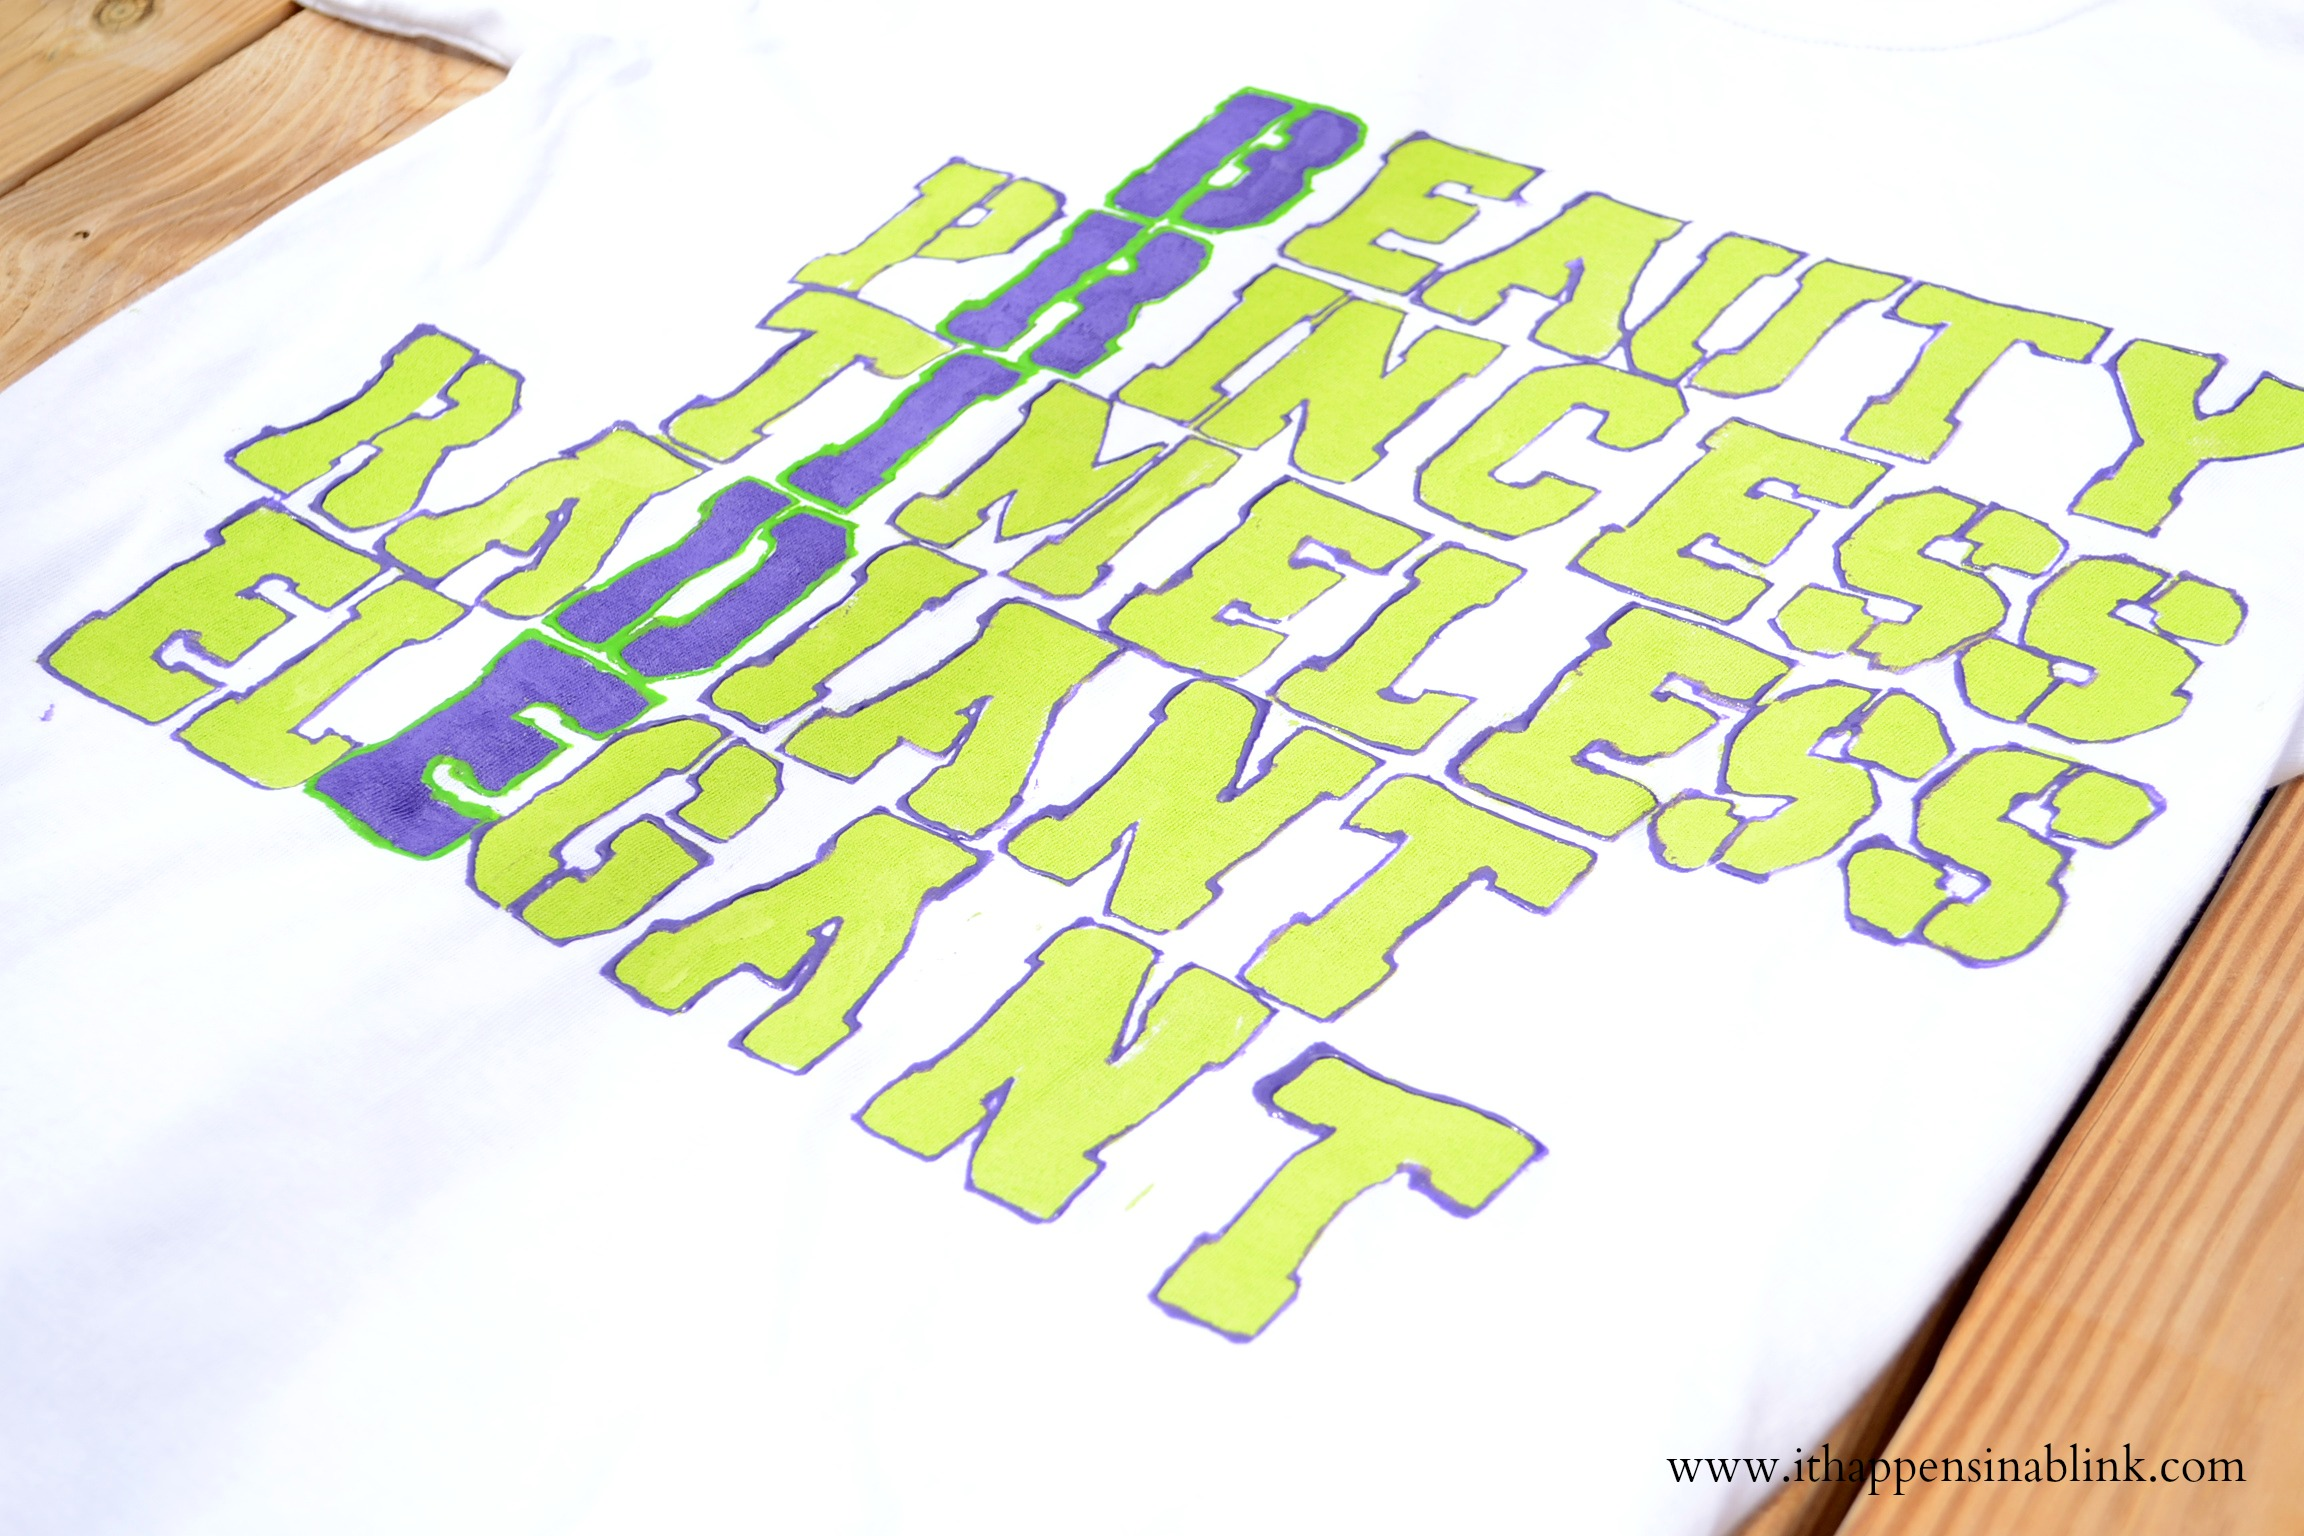 Shirt design with fabric paint - Fabric Paint Descriptive Shirt From It Happens In A Blink